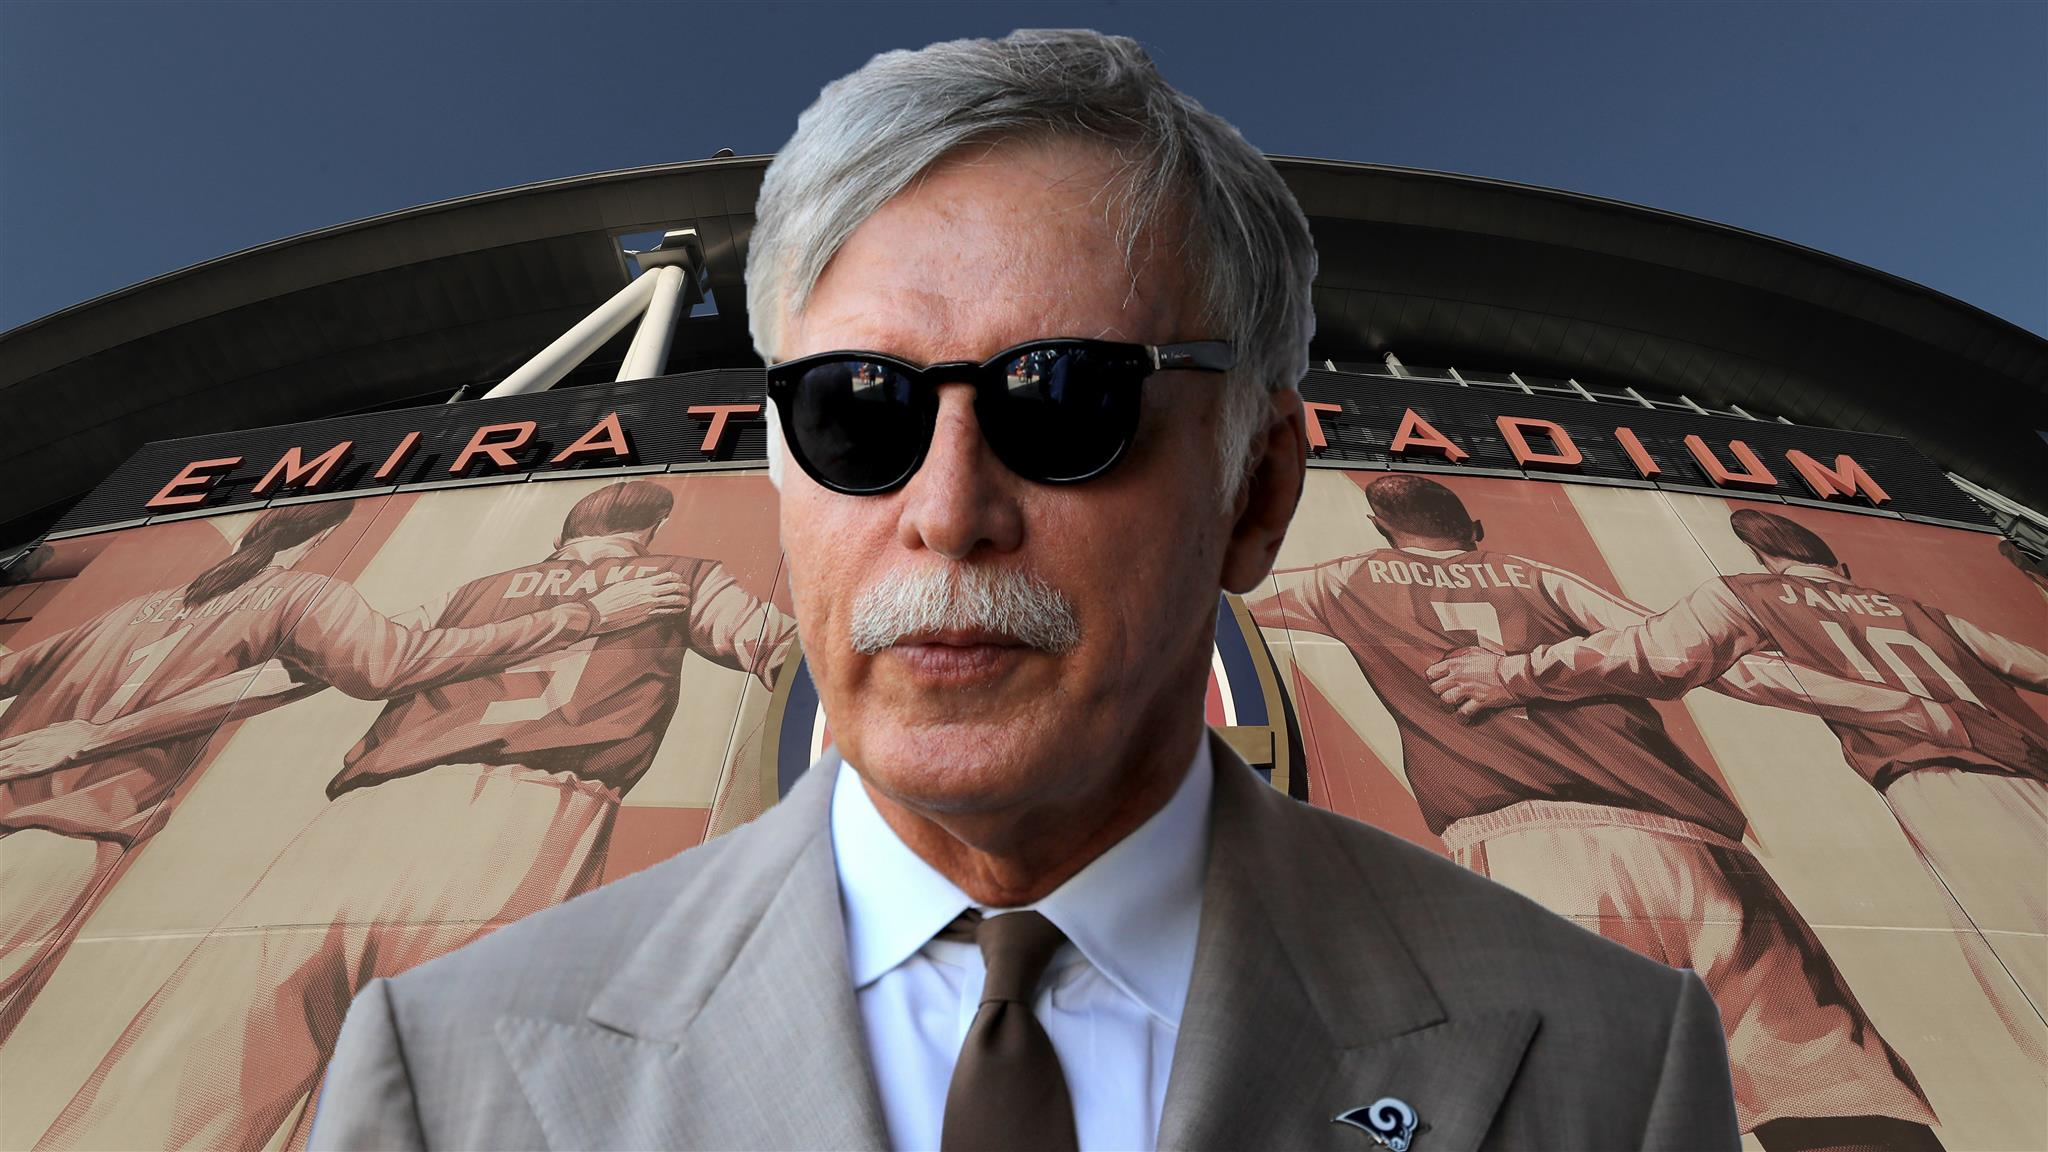 Arsenal fans will not be able to hold Stan Kroenke to account